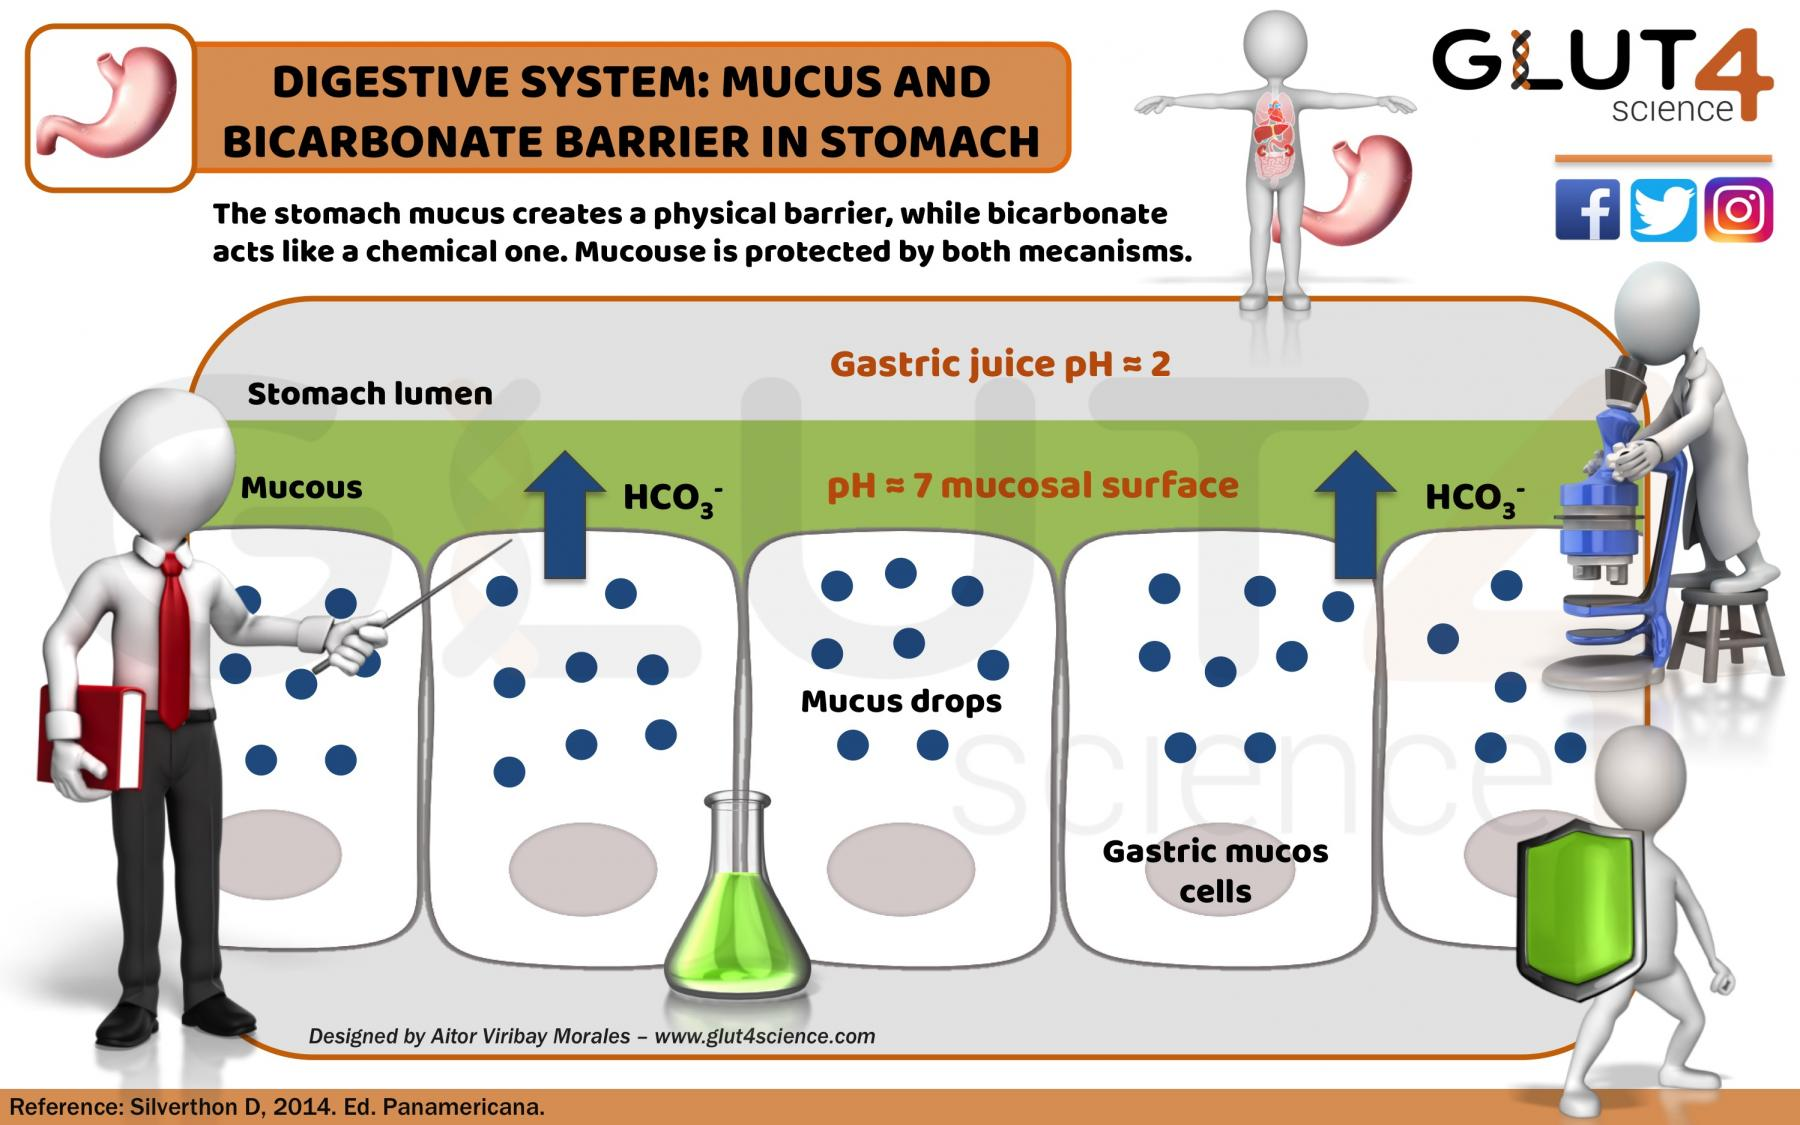 Mucose-bicarbonate barrier in the stomach